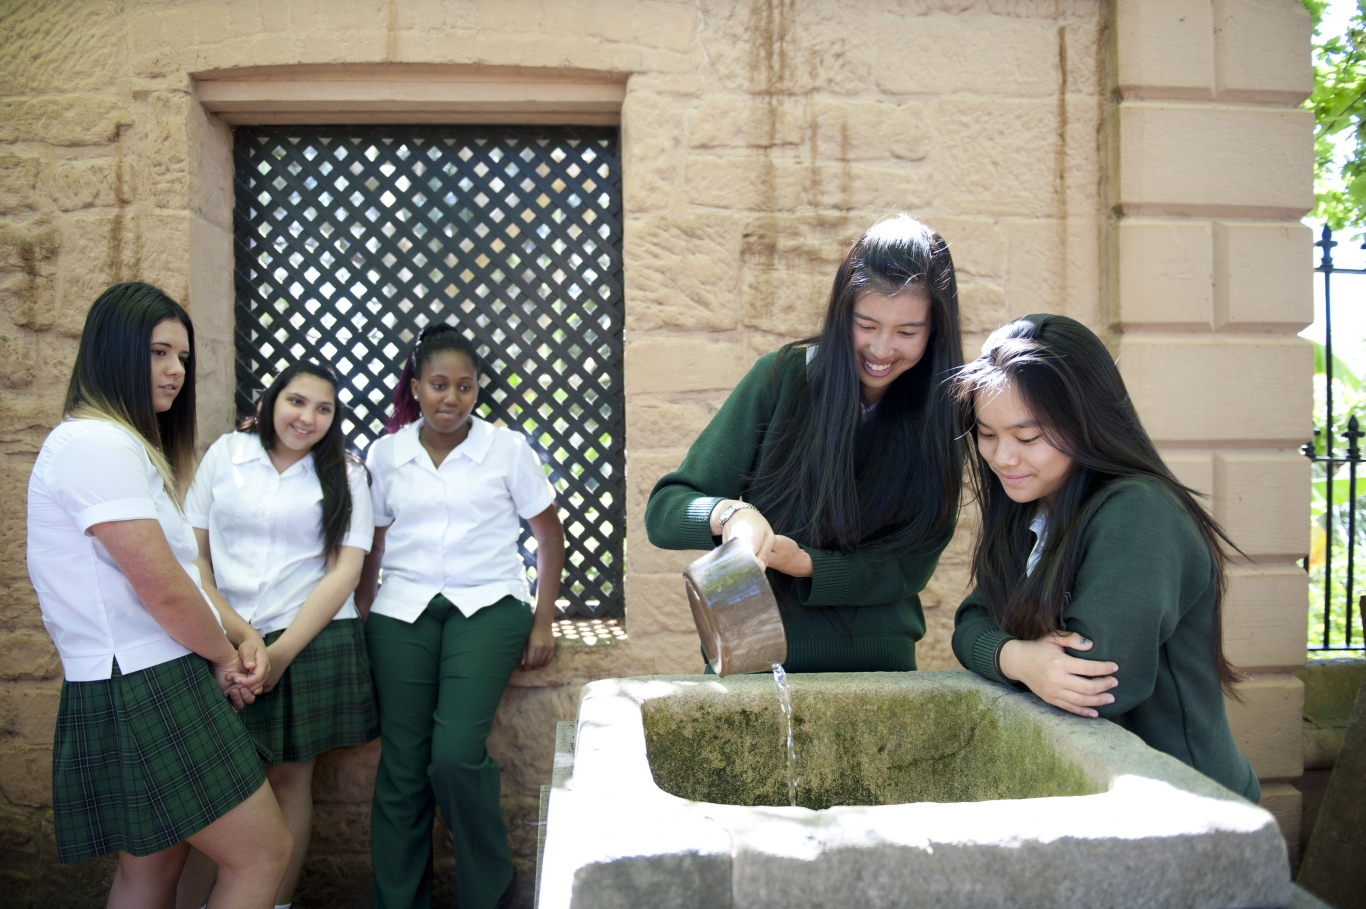 Students scooping water from the dripstone in the courtyard at Elizabeth Farm.